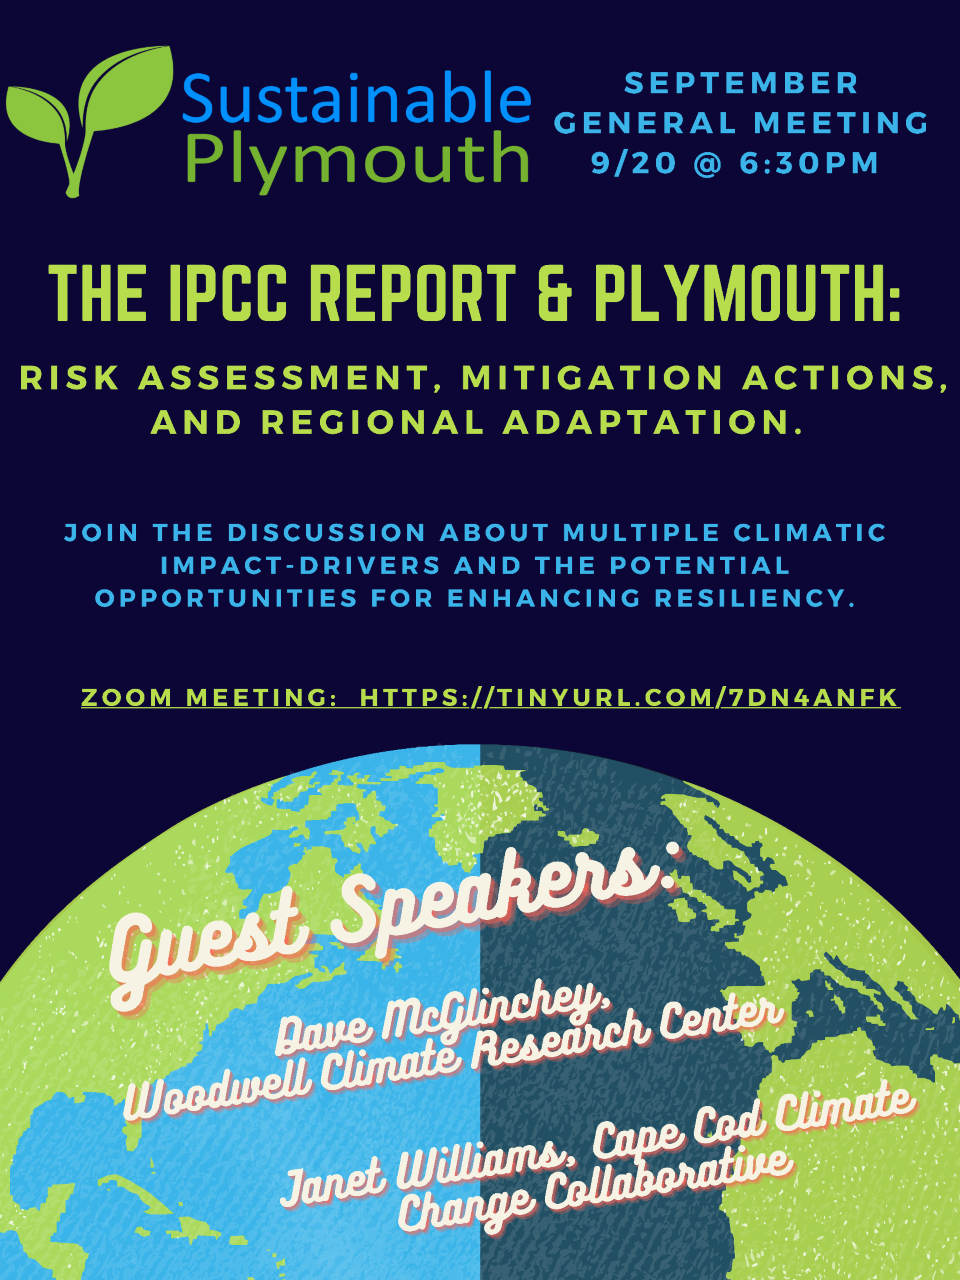 Sustainable Plymouth Meeting with Special Guests 9/20 at 6:30 PM